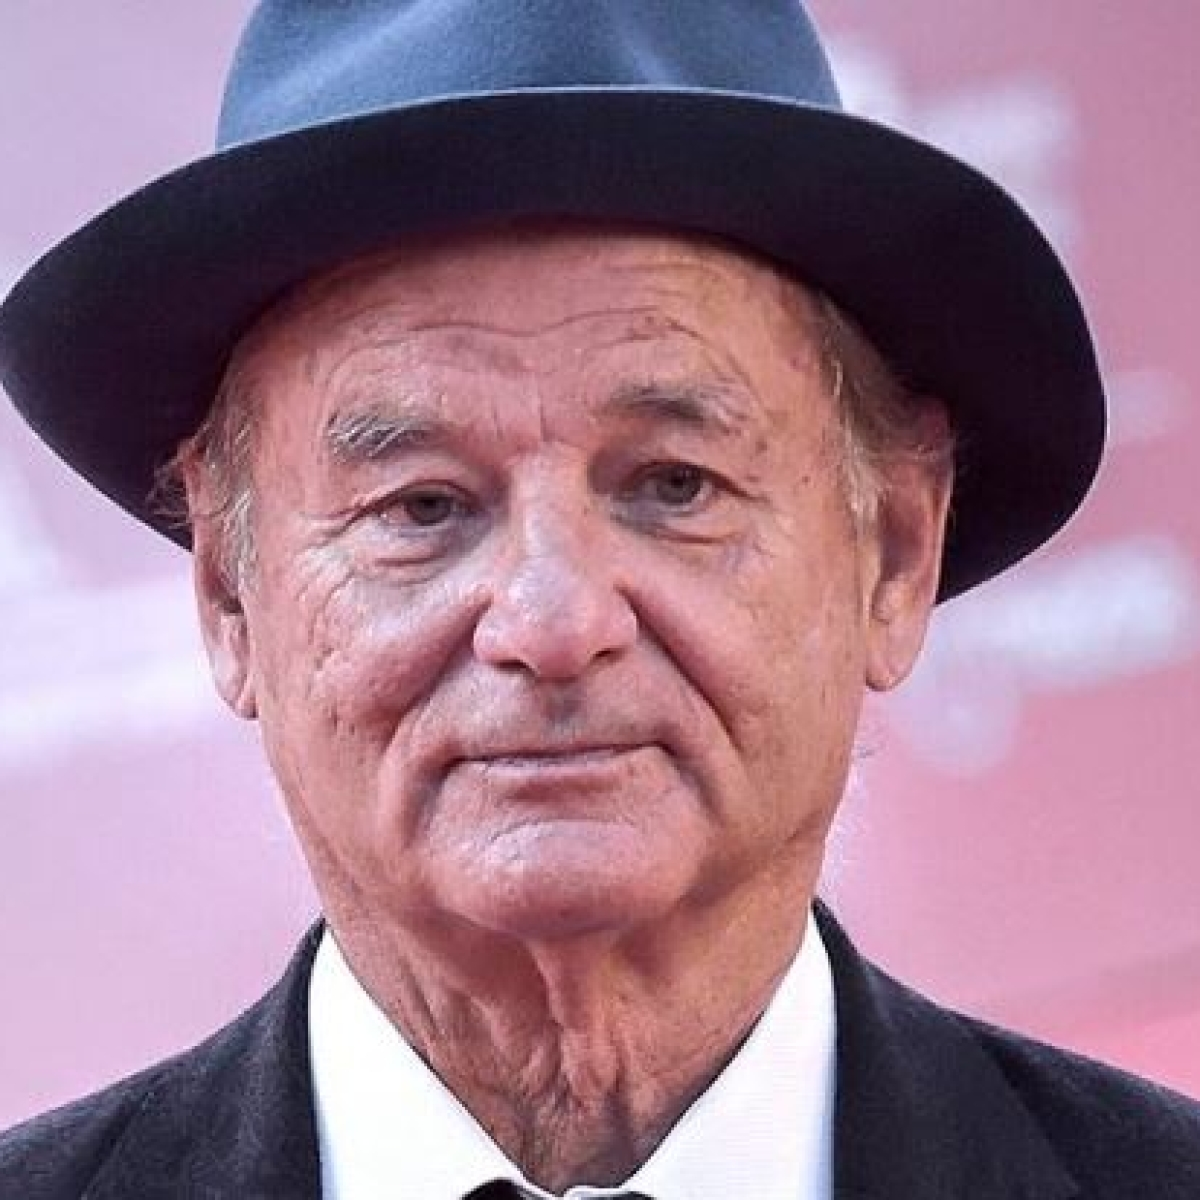 Bill Murray's son arrested at Black Lives Matter protest: Reports